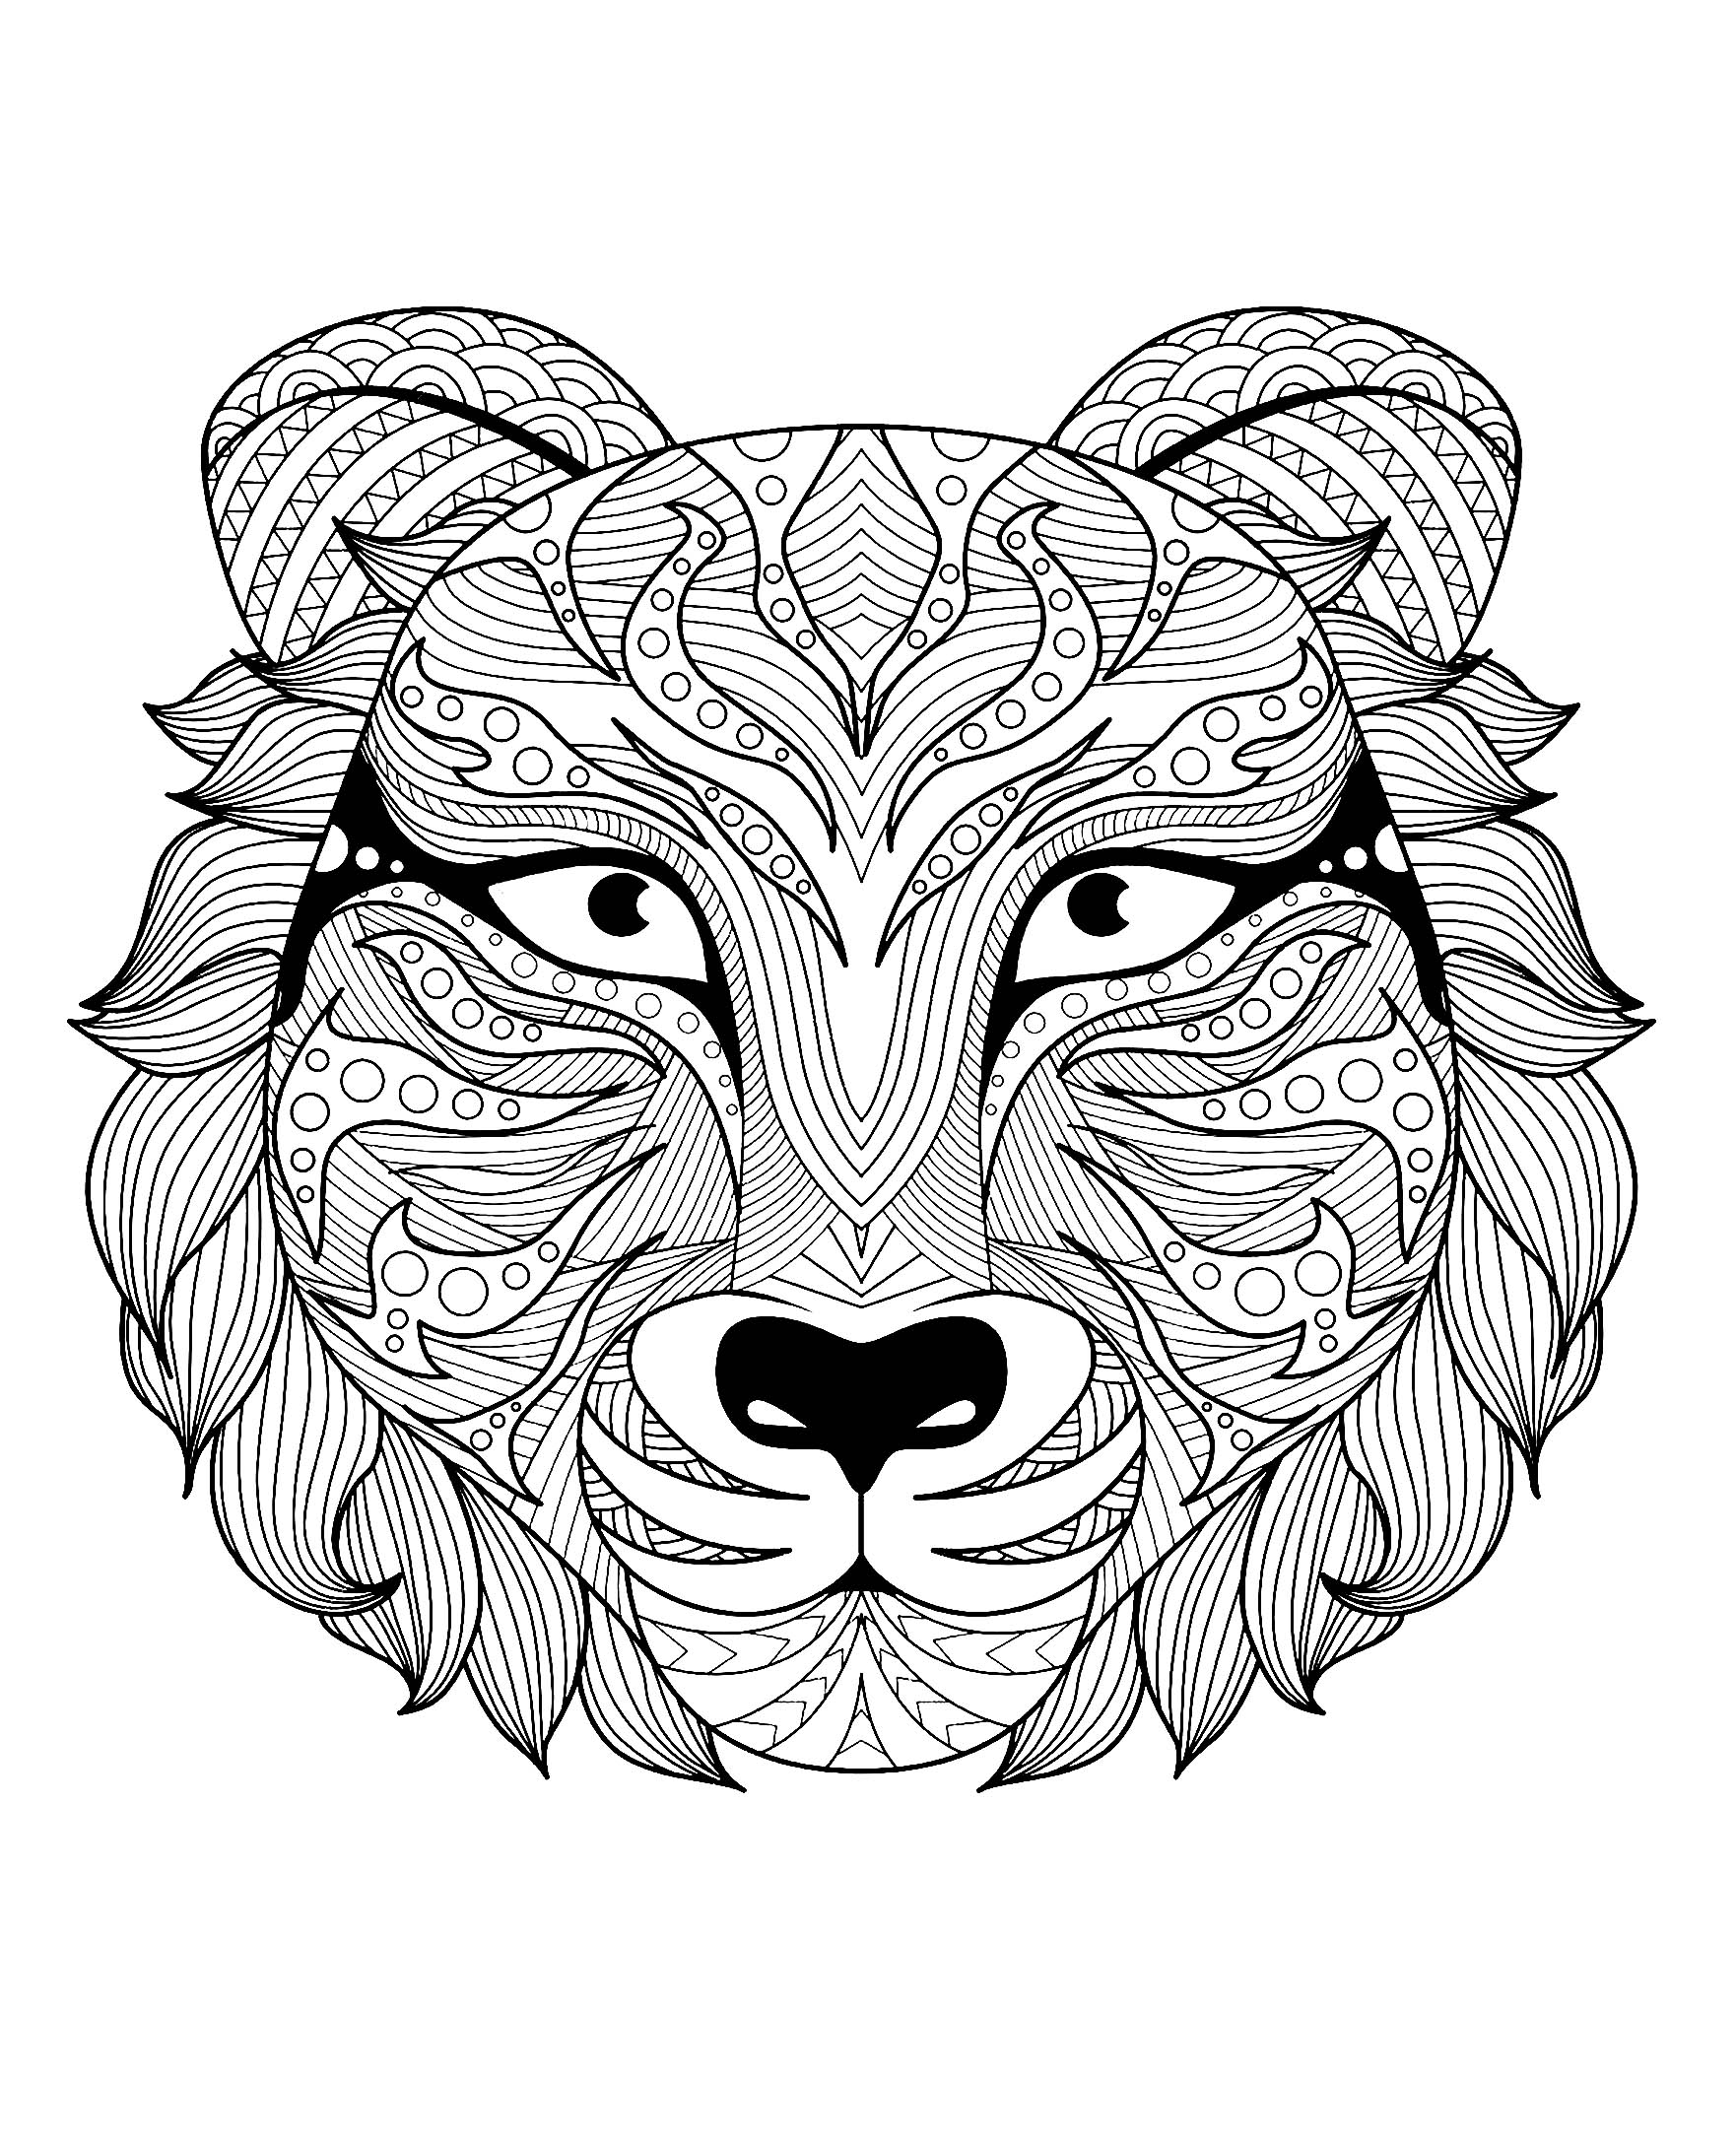 tiger images for colouring tiger coloring pages colouring tiger for images